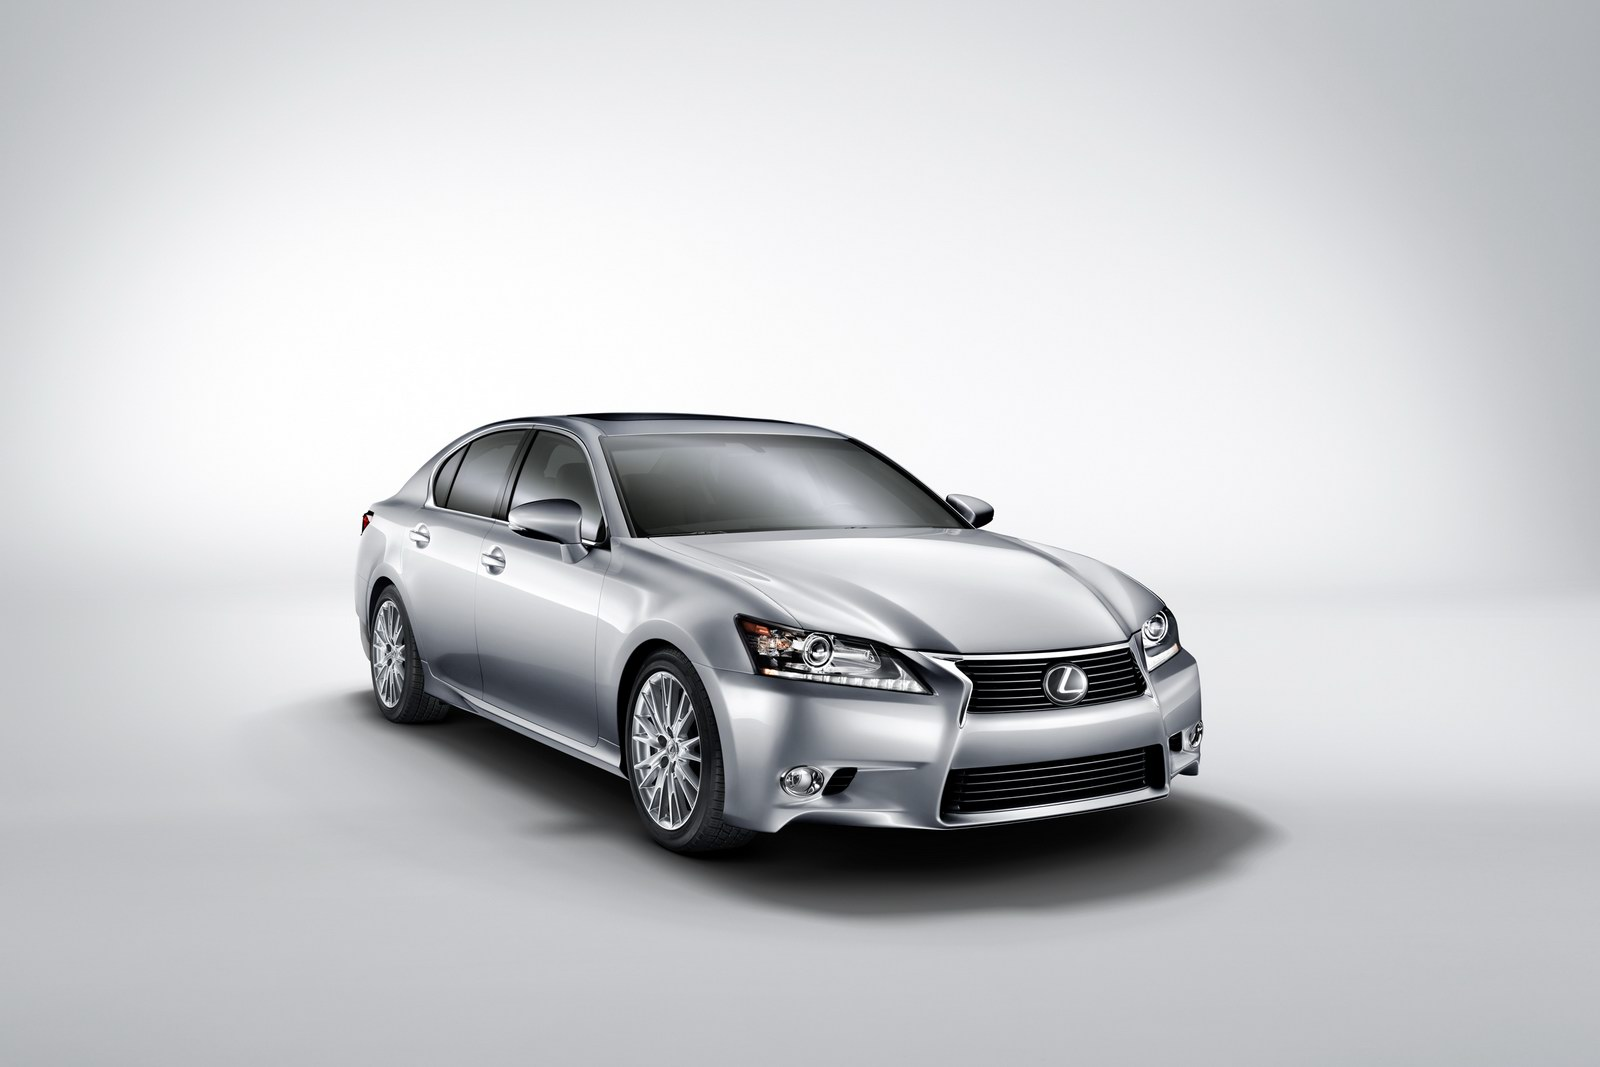 2013 Lexus GS Sedan Model 4 2013 Lexus GS Sedan Model  More Attractive and Elegant